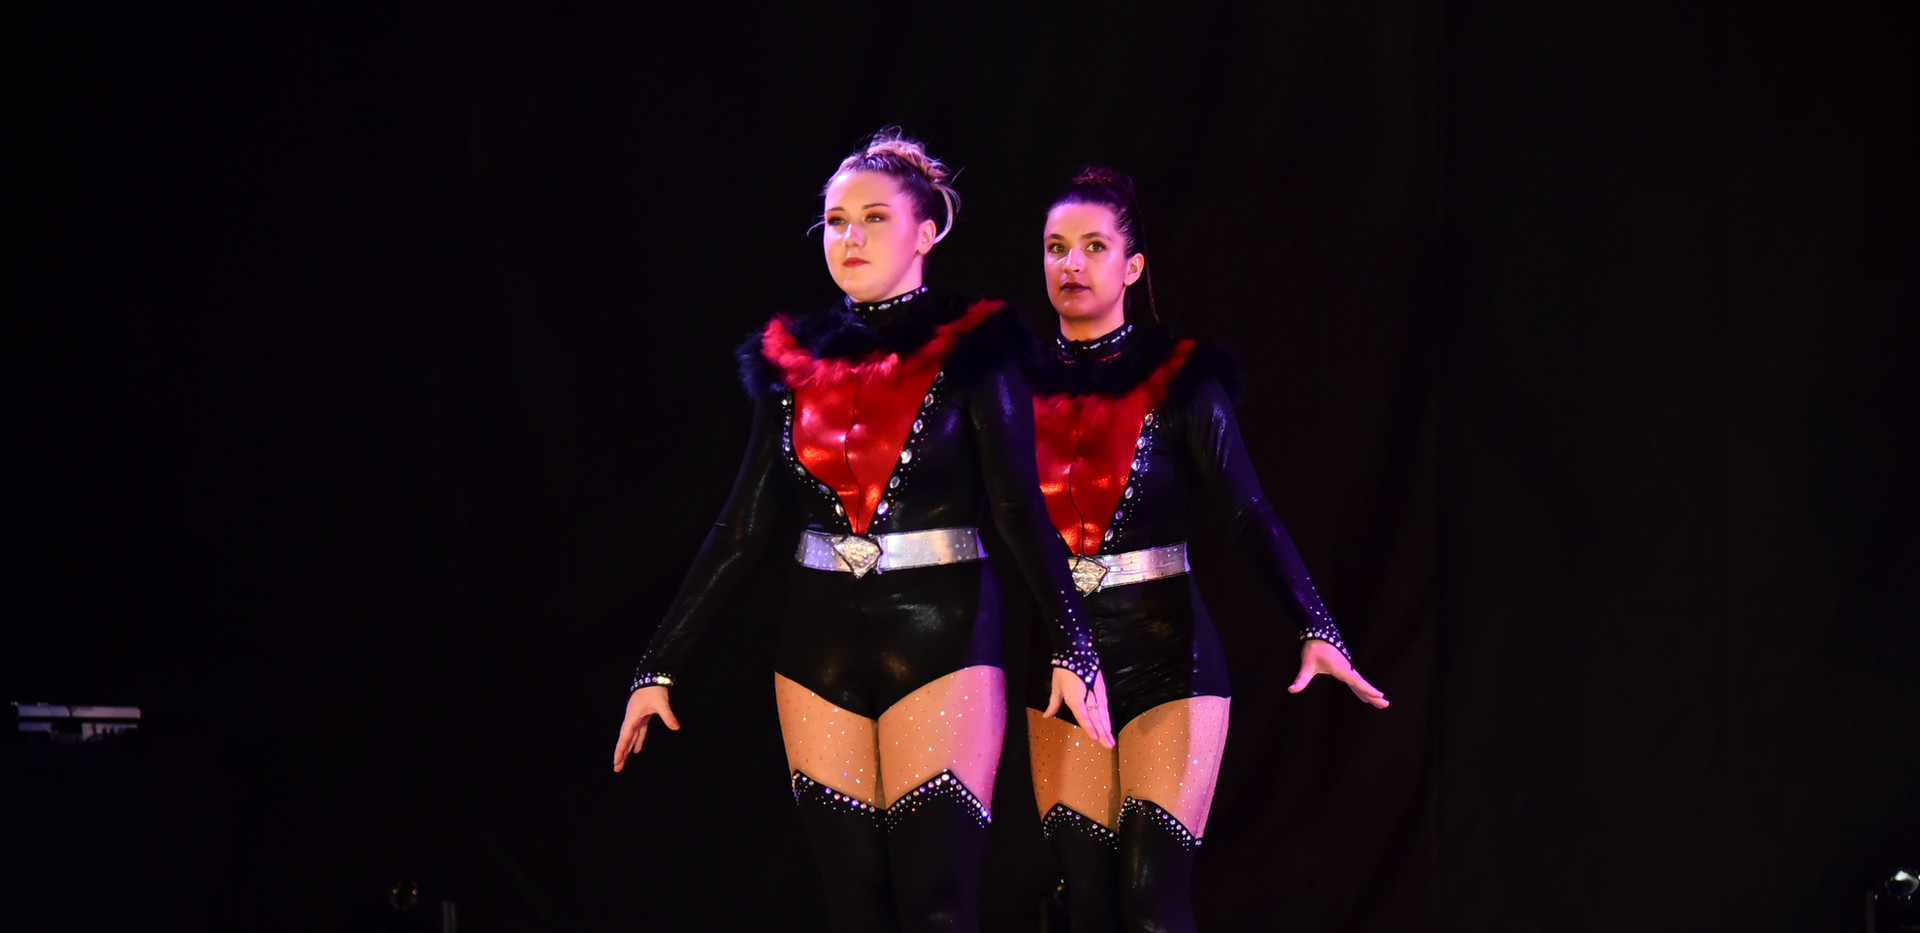 DANCE SHOW 19 - RS DUO Rose & Julie (1)_